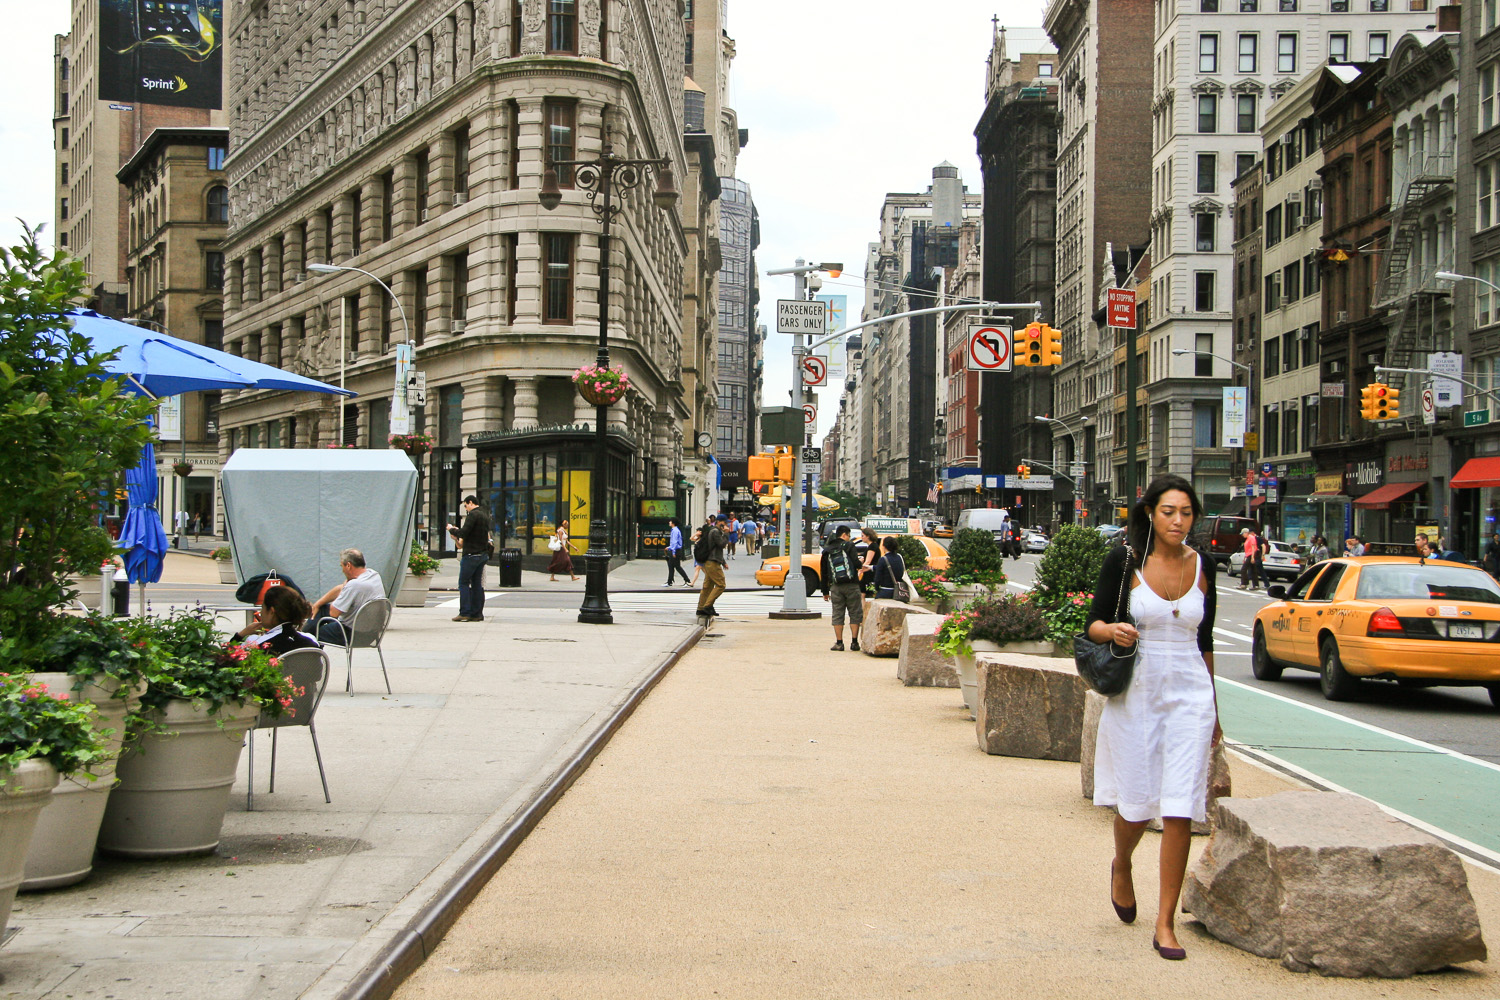 Top 5 Most Upscale neighborhoods in New York City